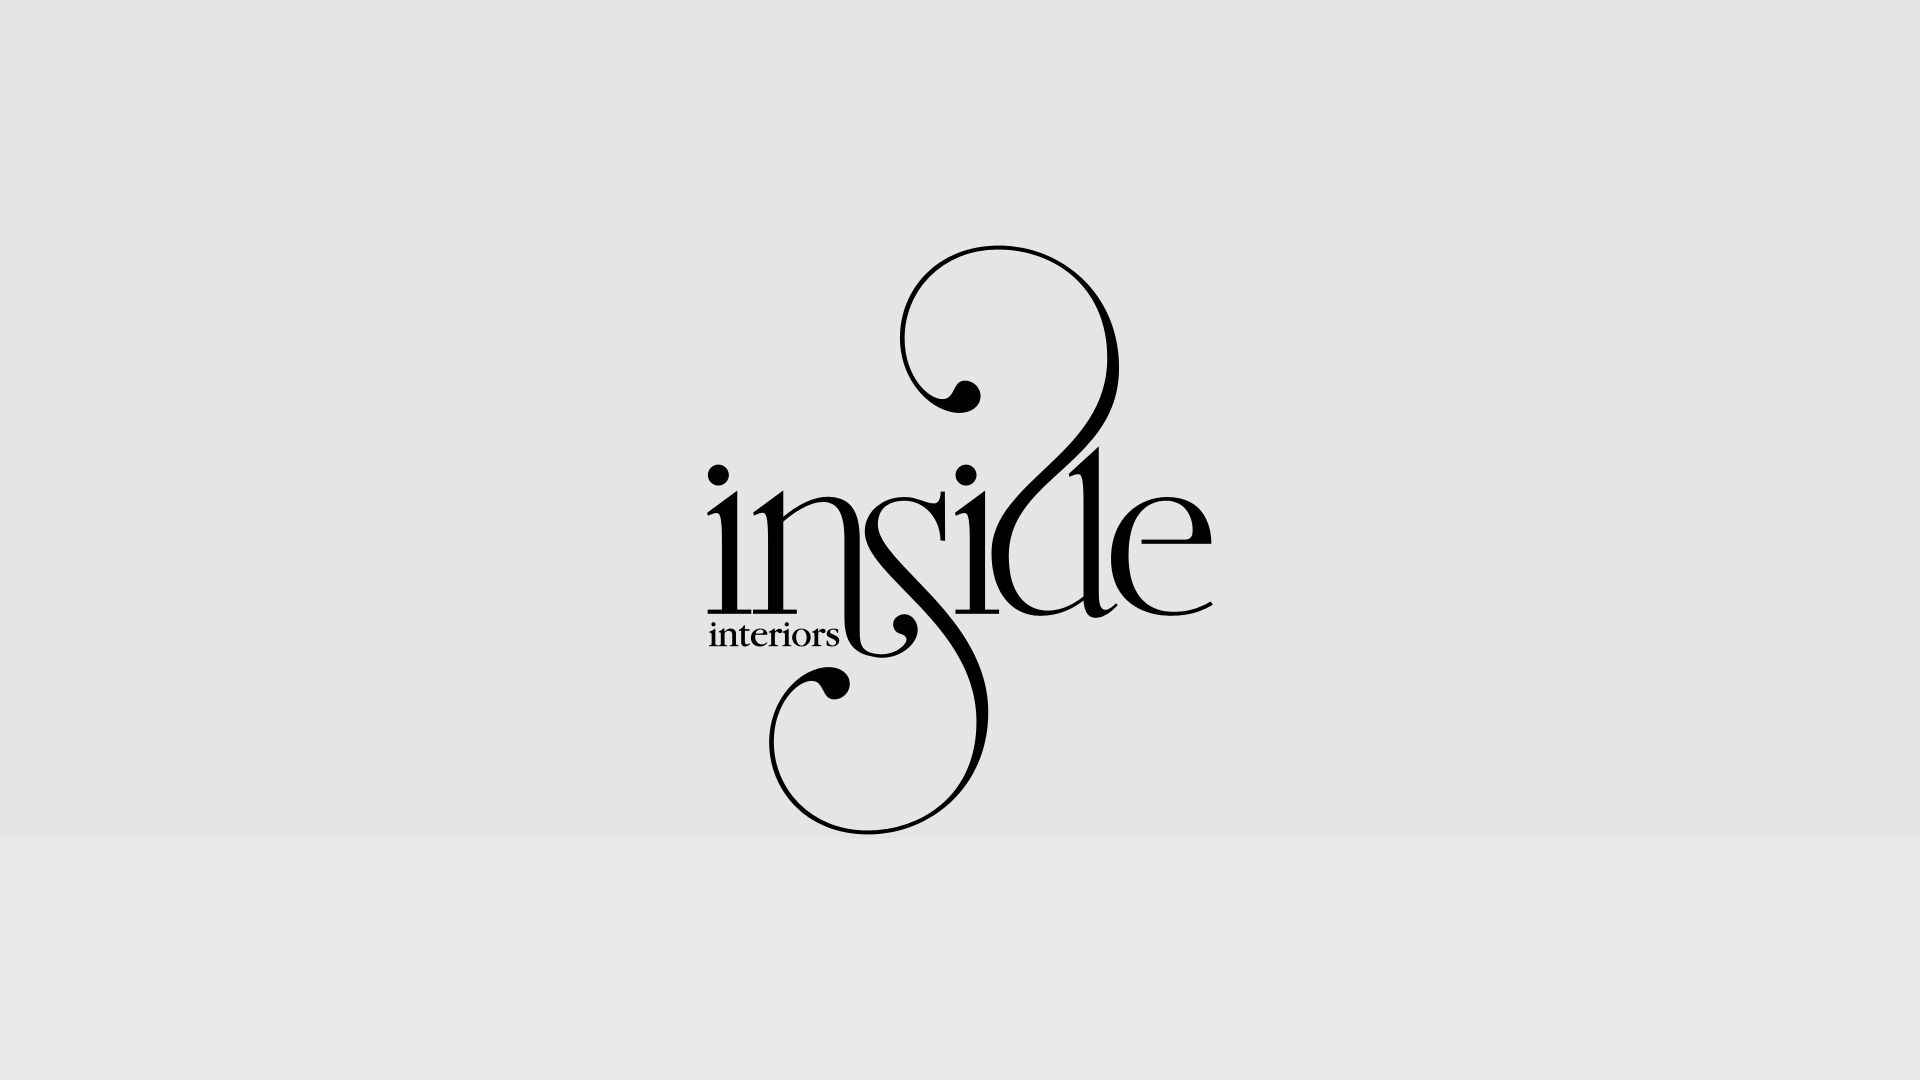 inside interiors company branding logo design typo pinterest logos interiors and typography